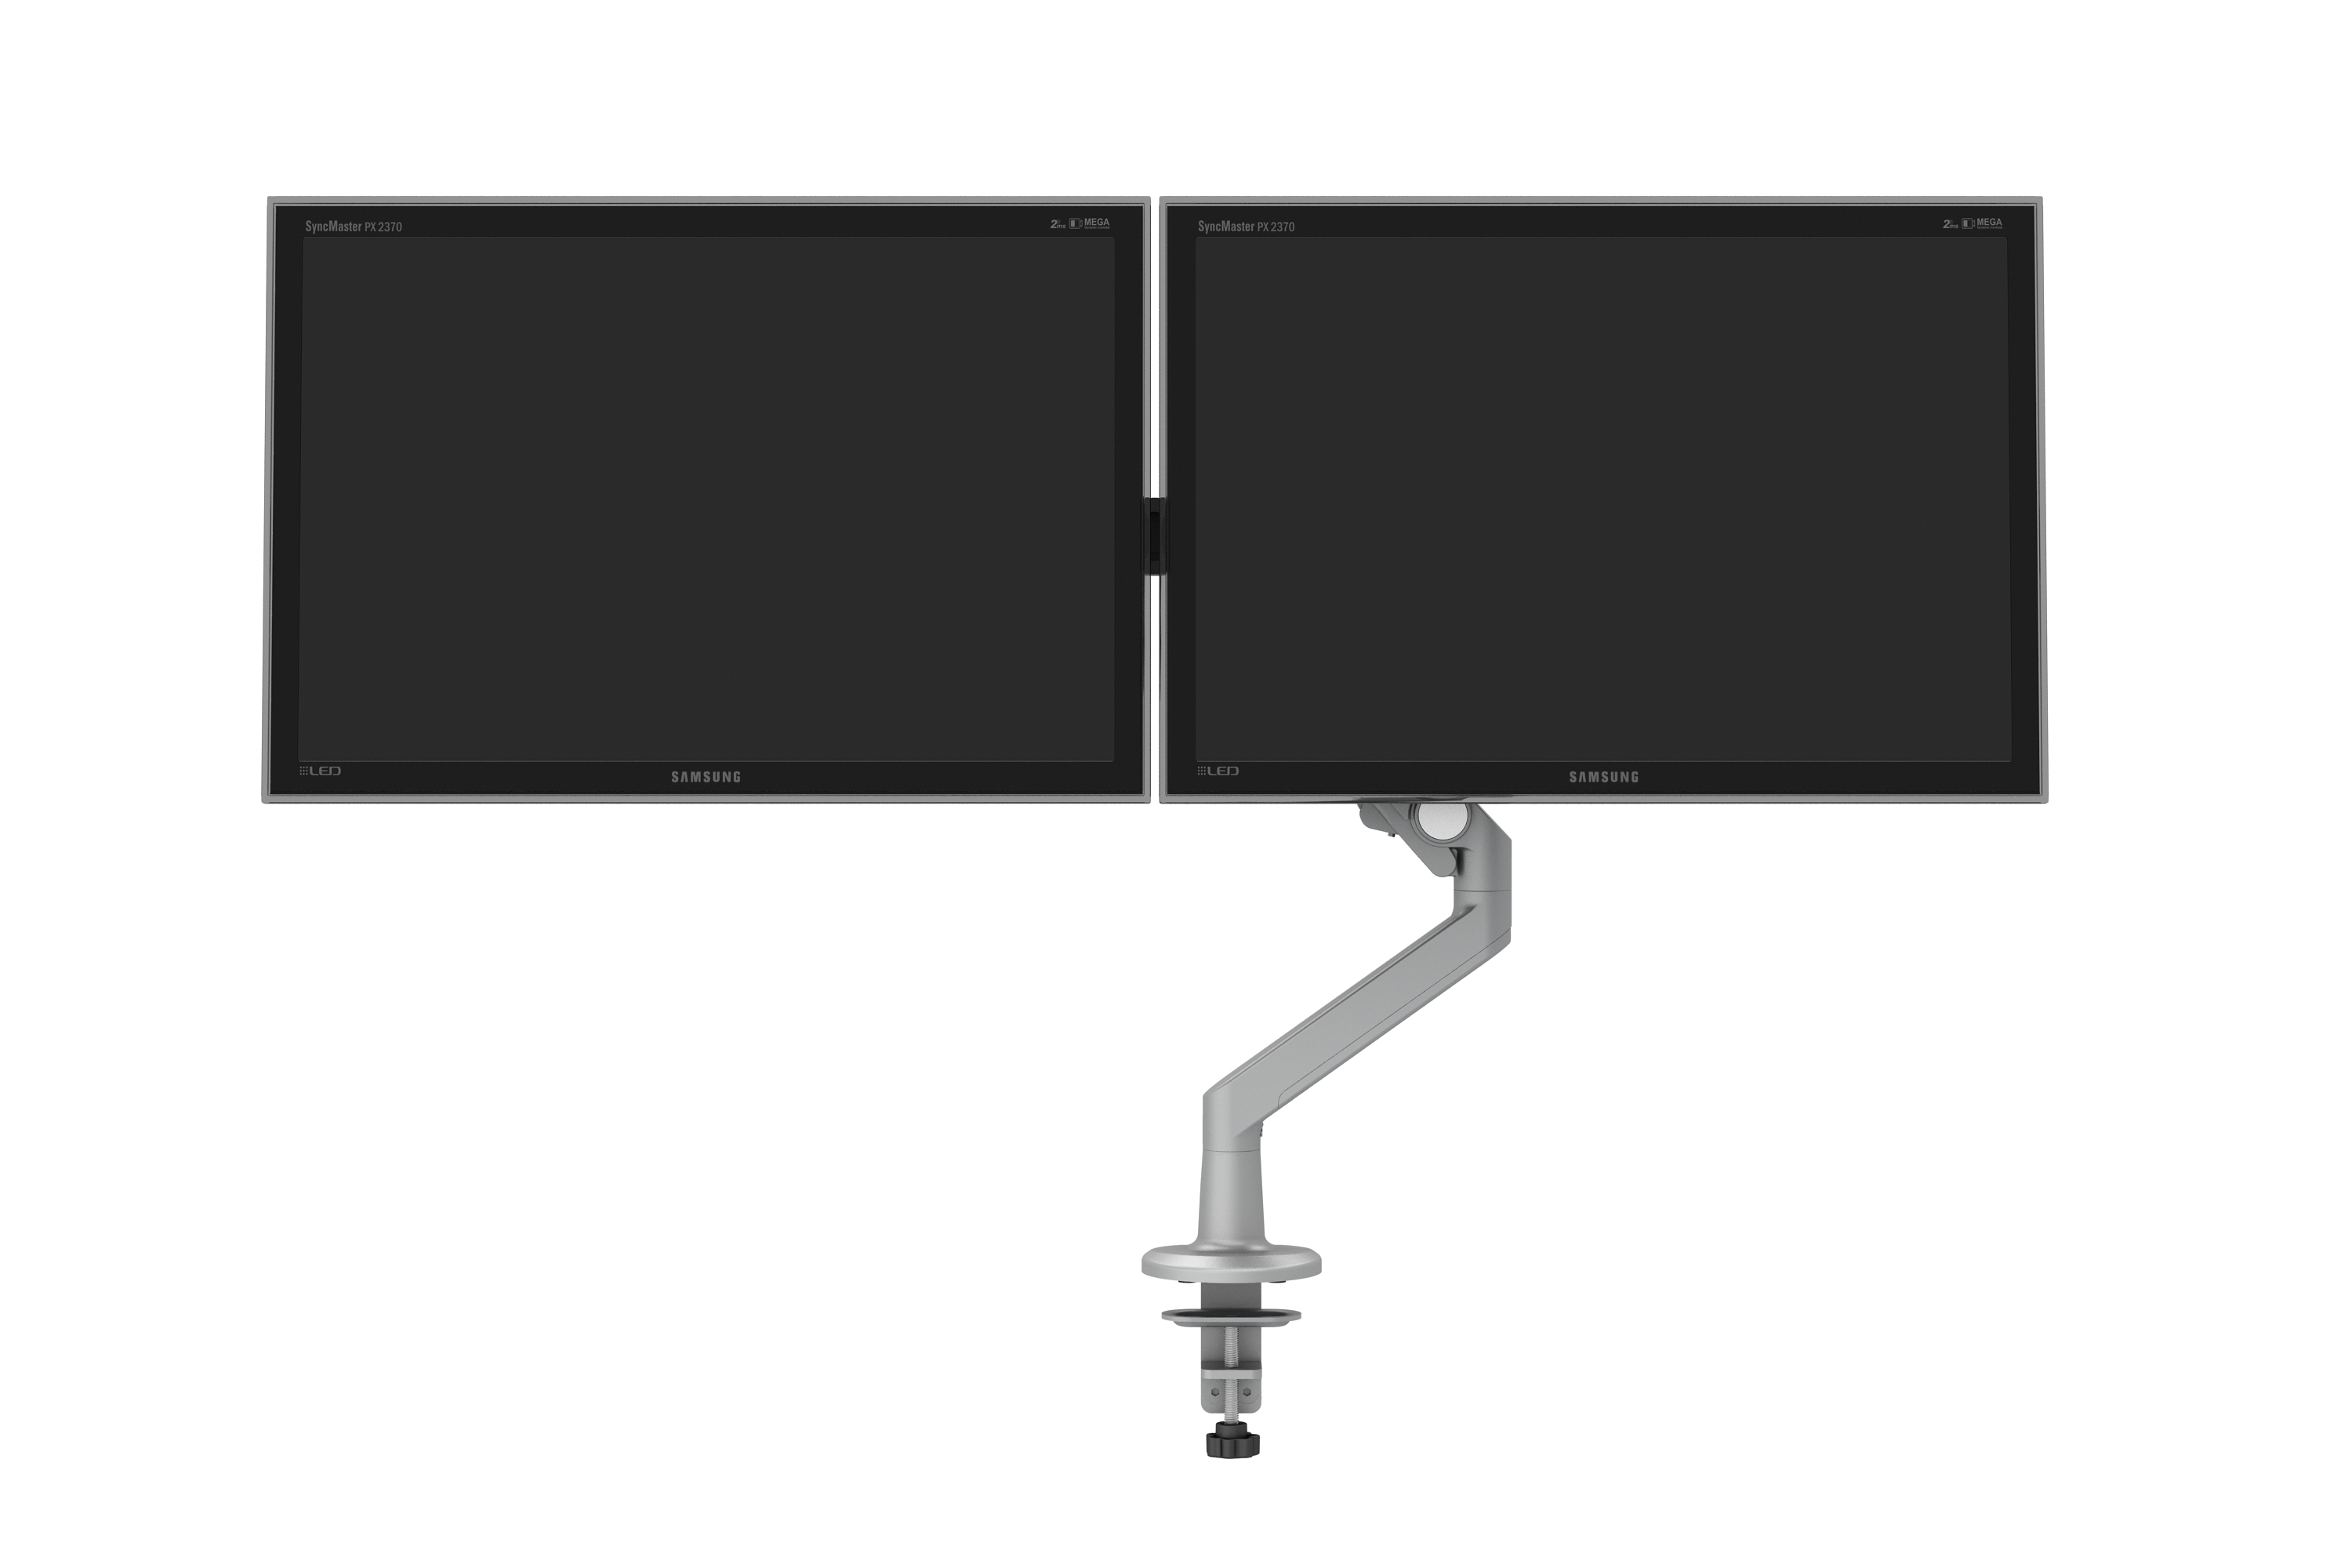 Monitor Arm for Shallow Depth Worksurfaces